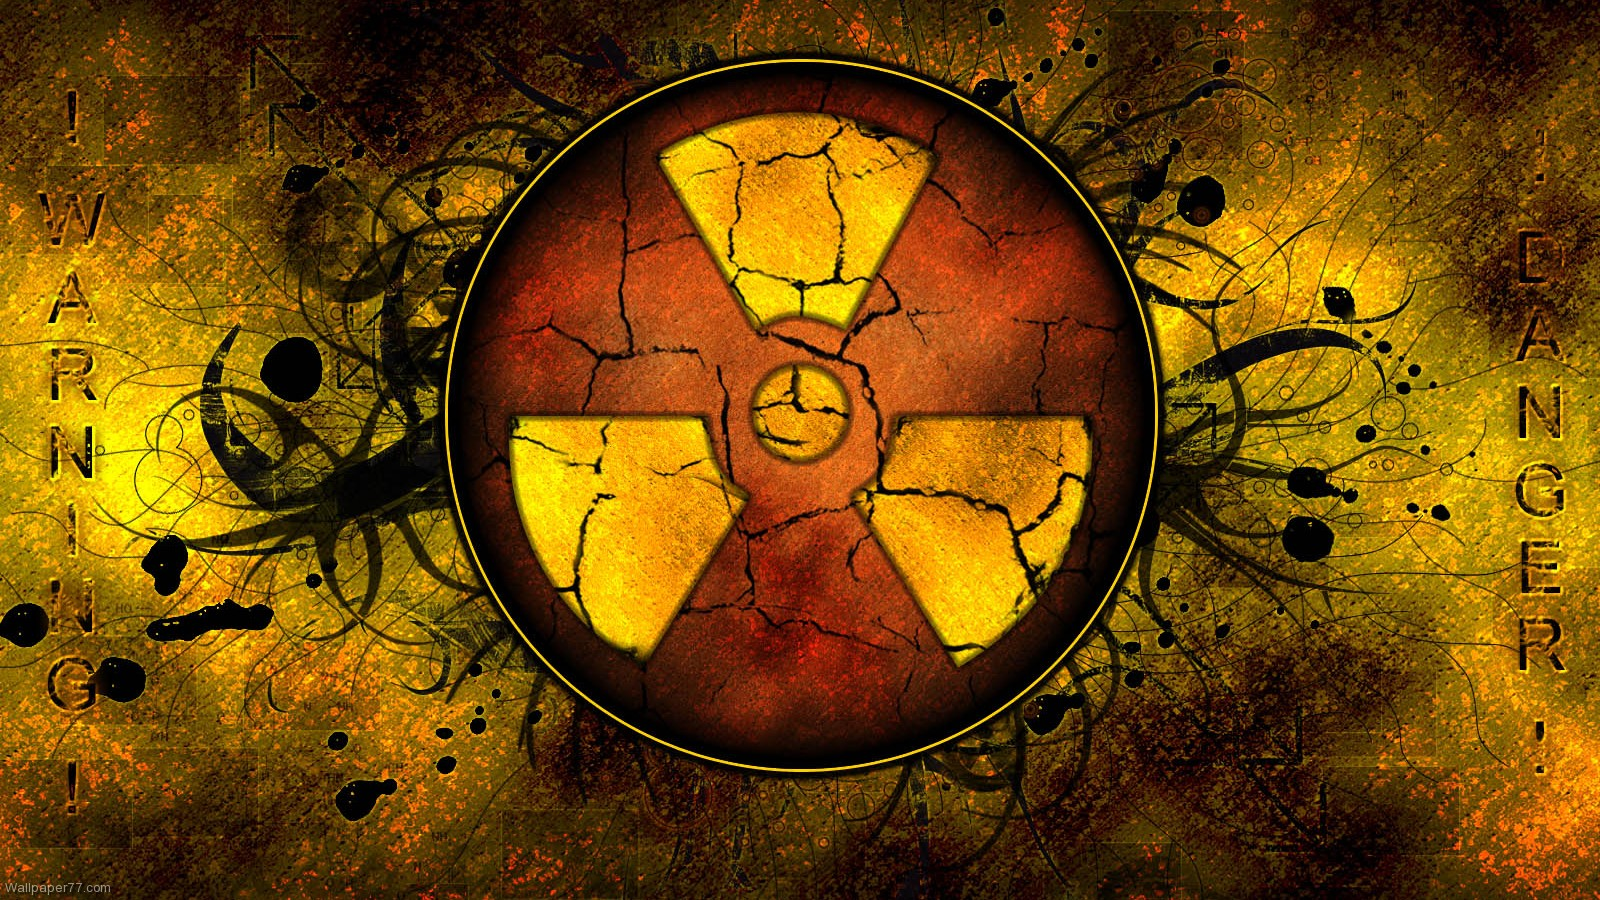 biohazard wallpaper and background image | 1600x900 | id:333211